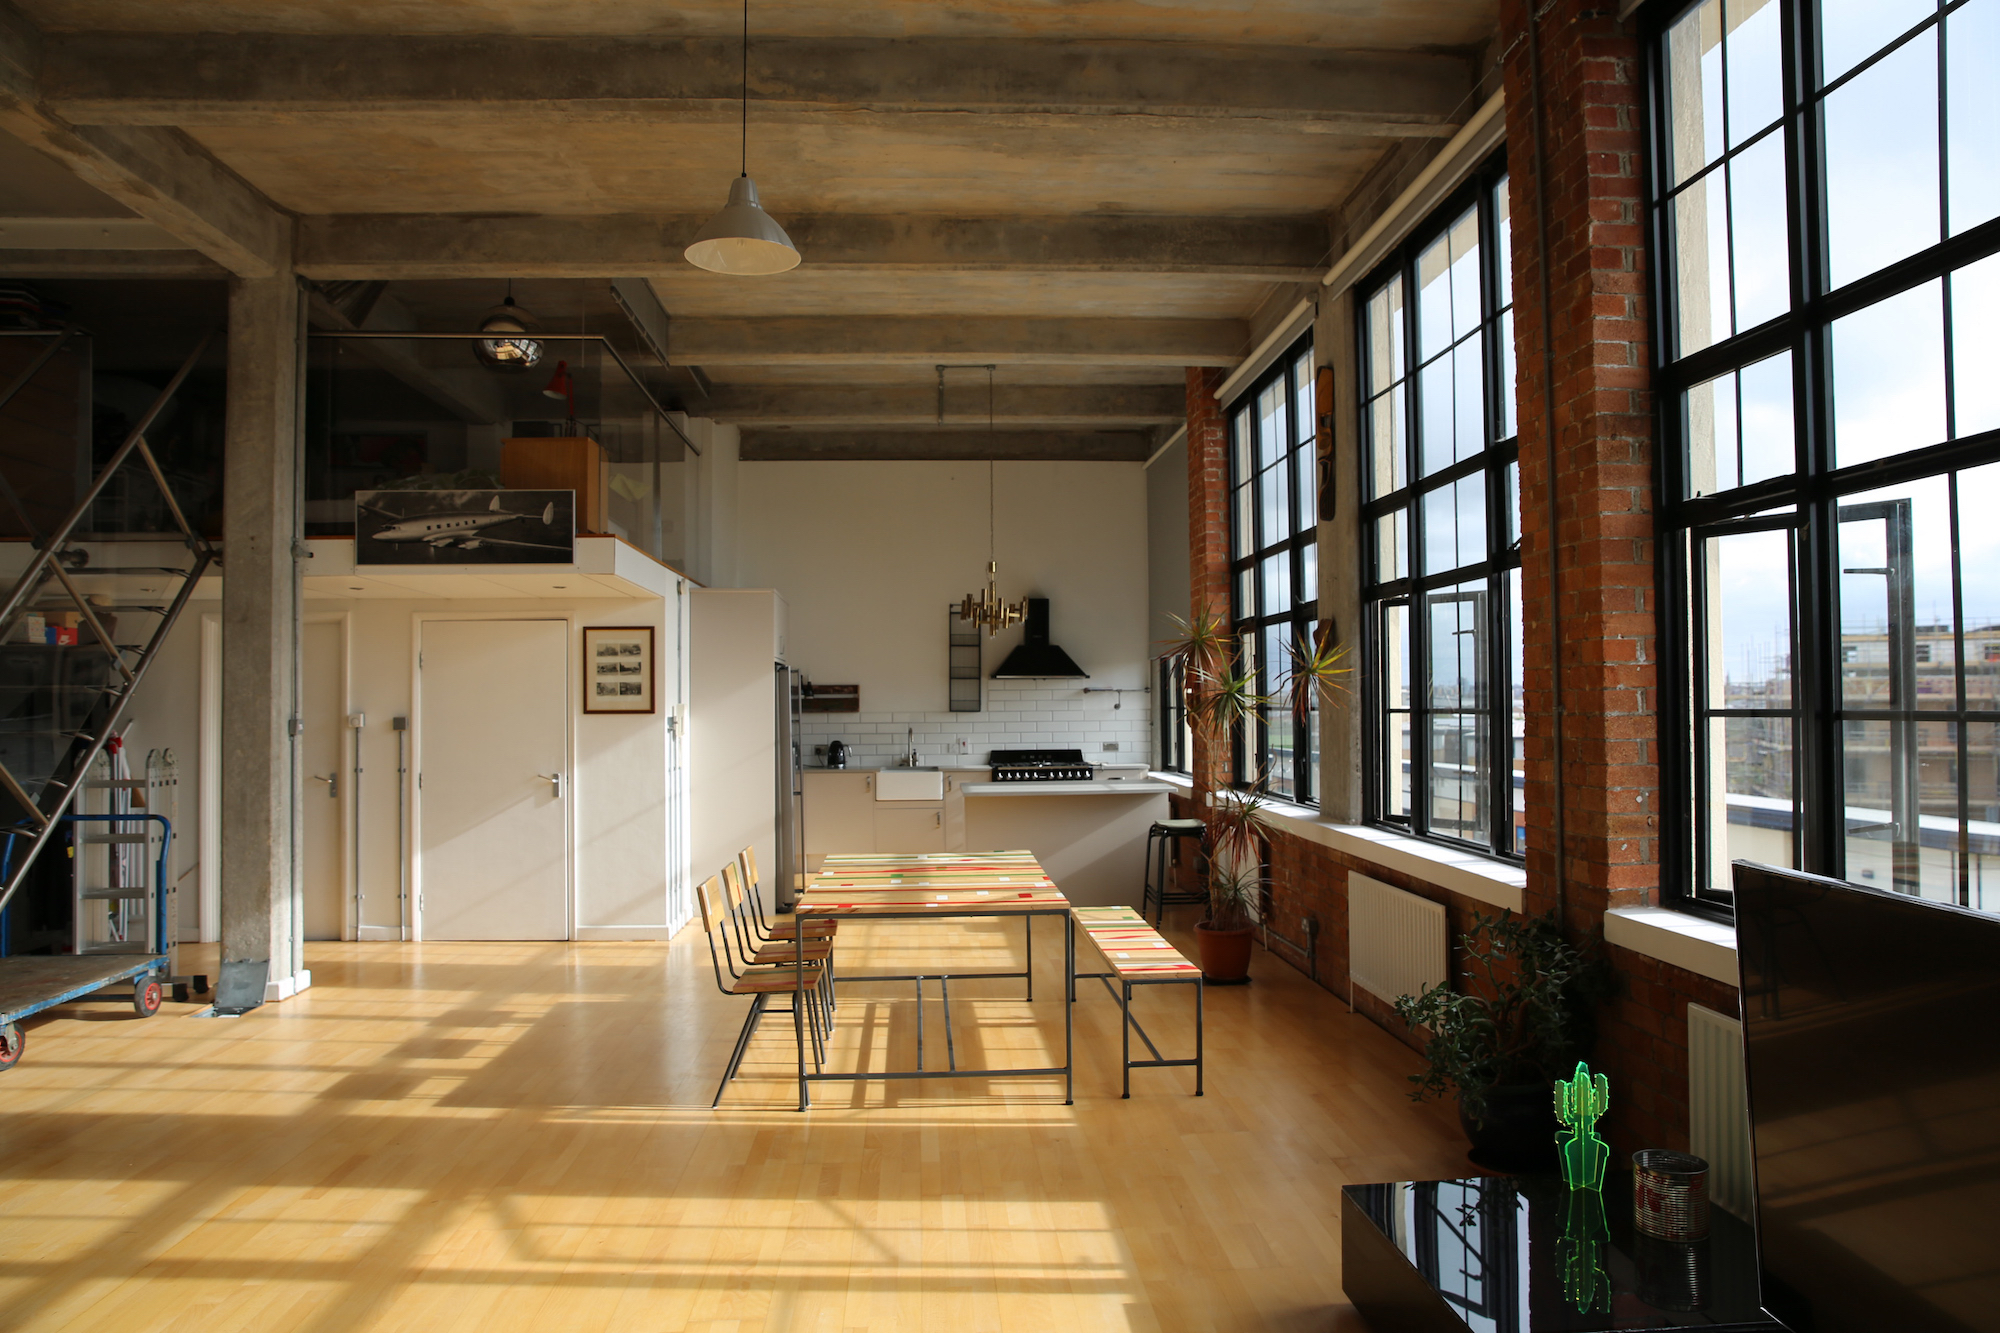 Povey London E5 Warehouse Apartment Shoot Location